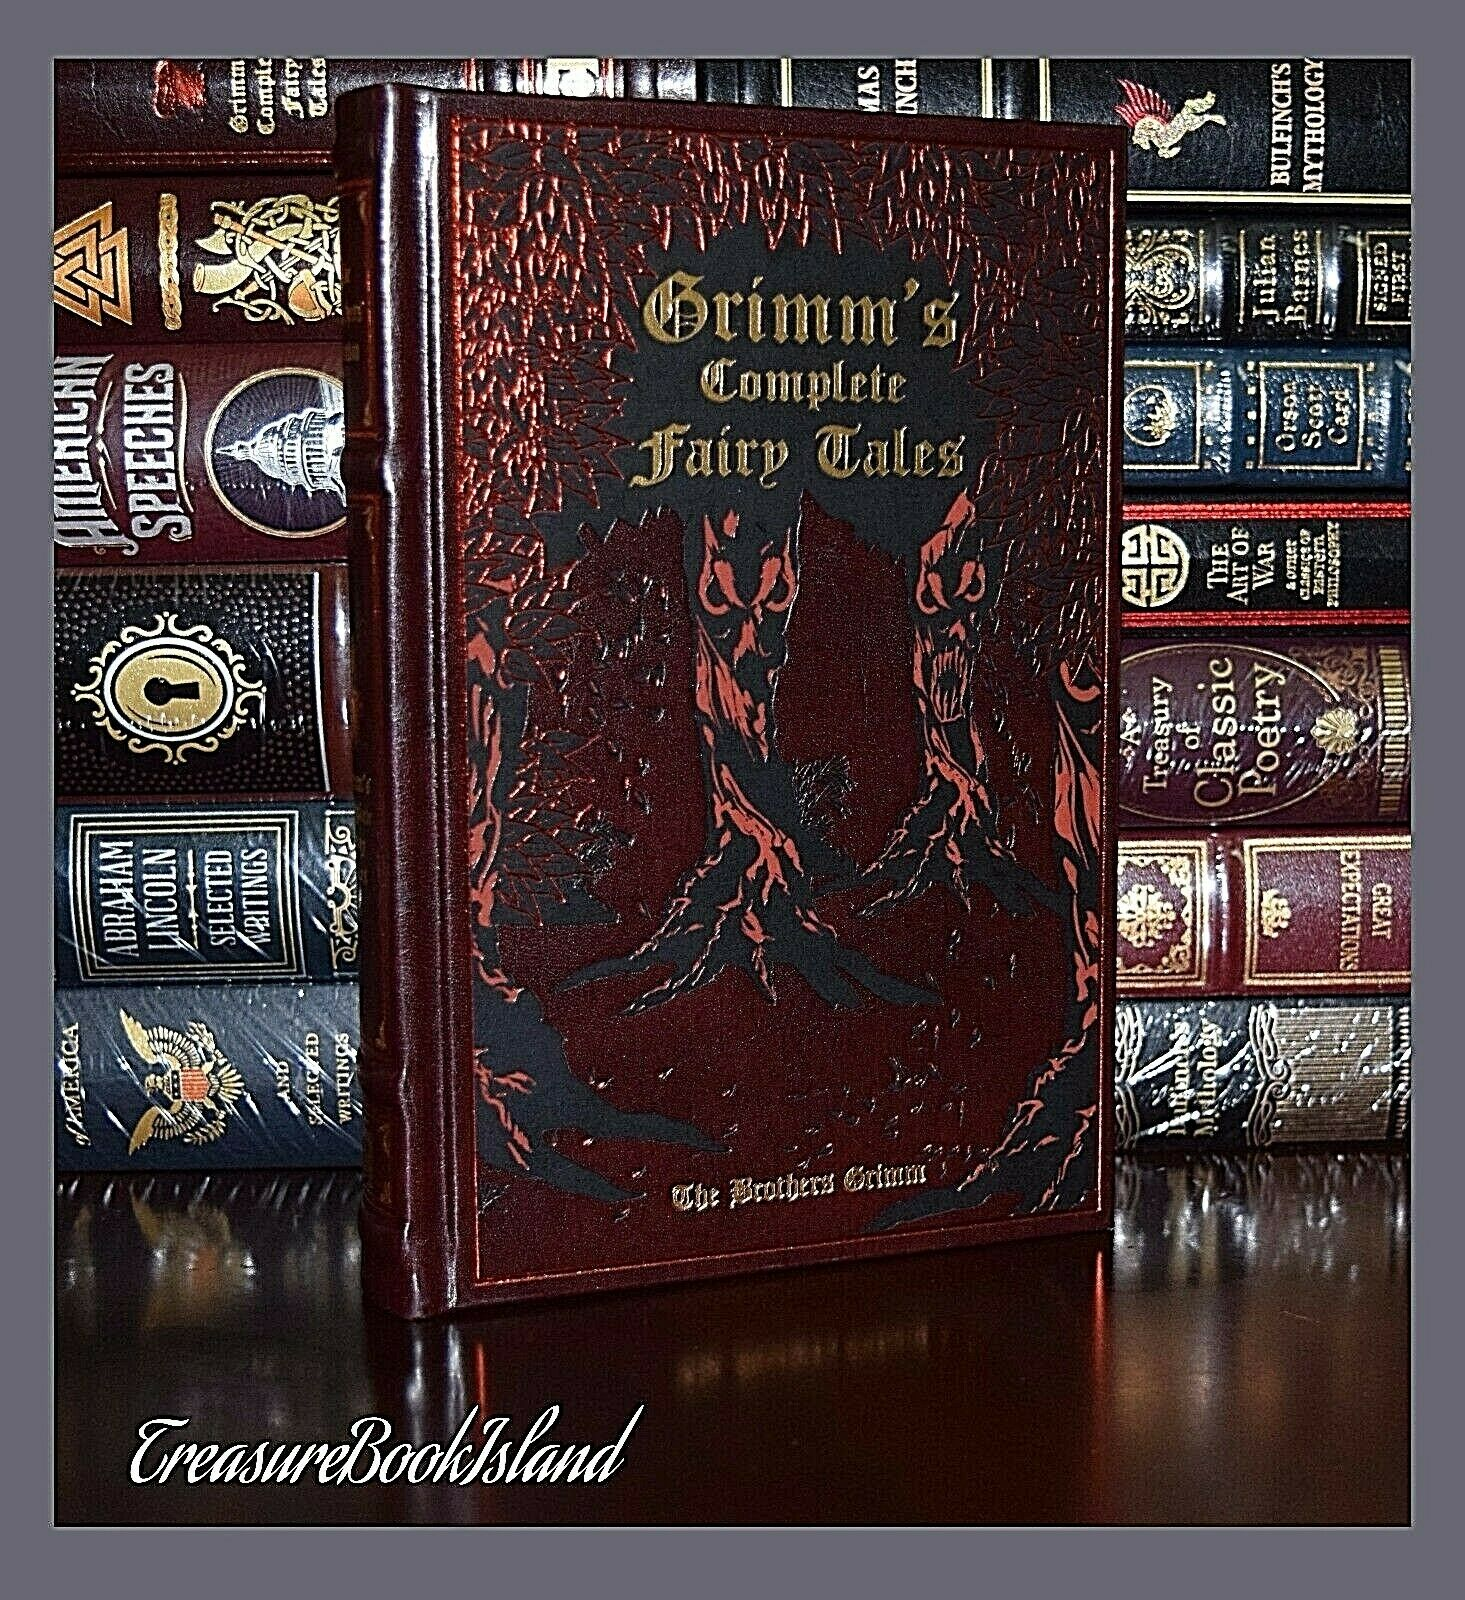 Complete Fairy Tales by Brothers Grimm New Illustrated Collectible Hardcover